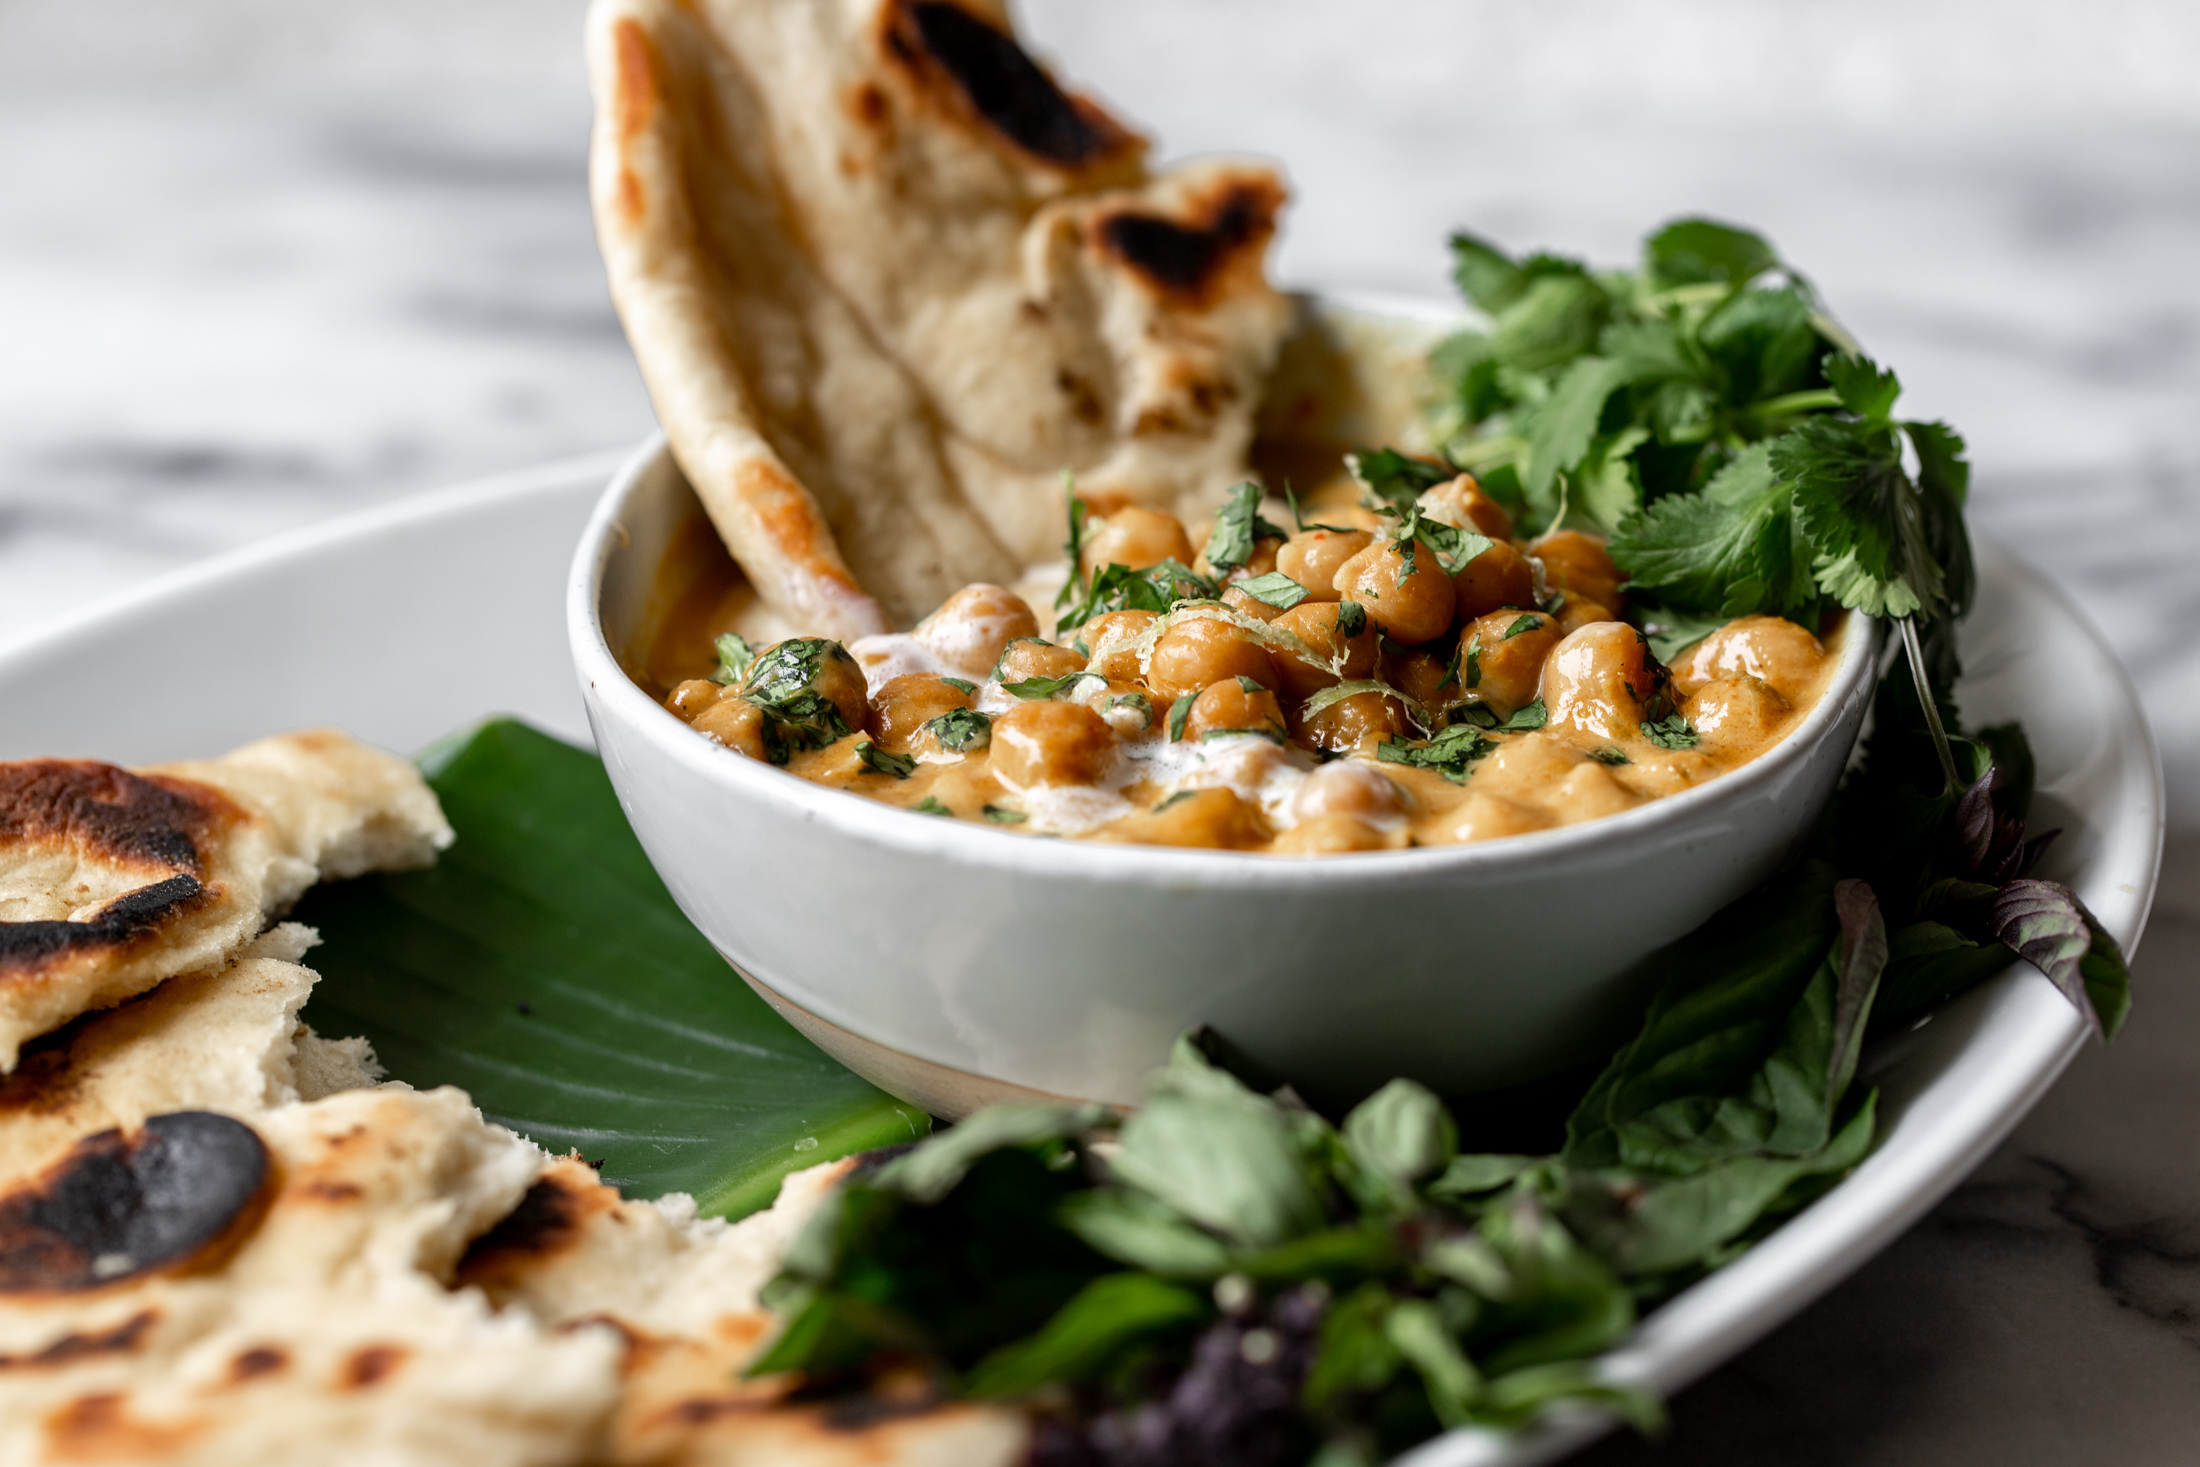 Chickpea Coconut Curryrecipe from cooking with cocktail rings